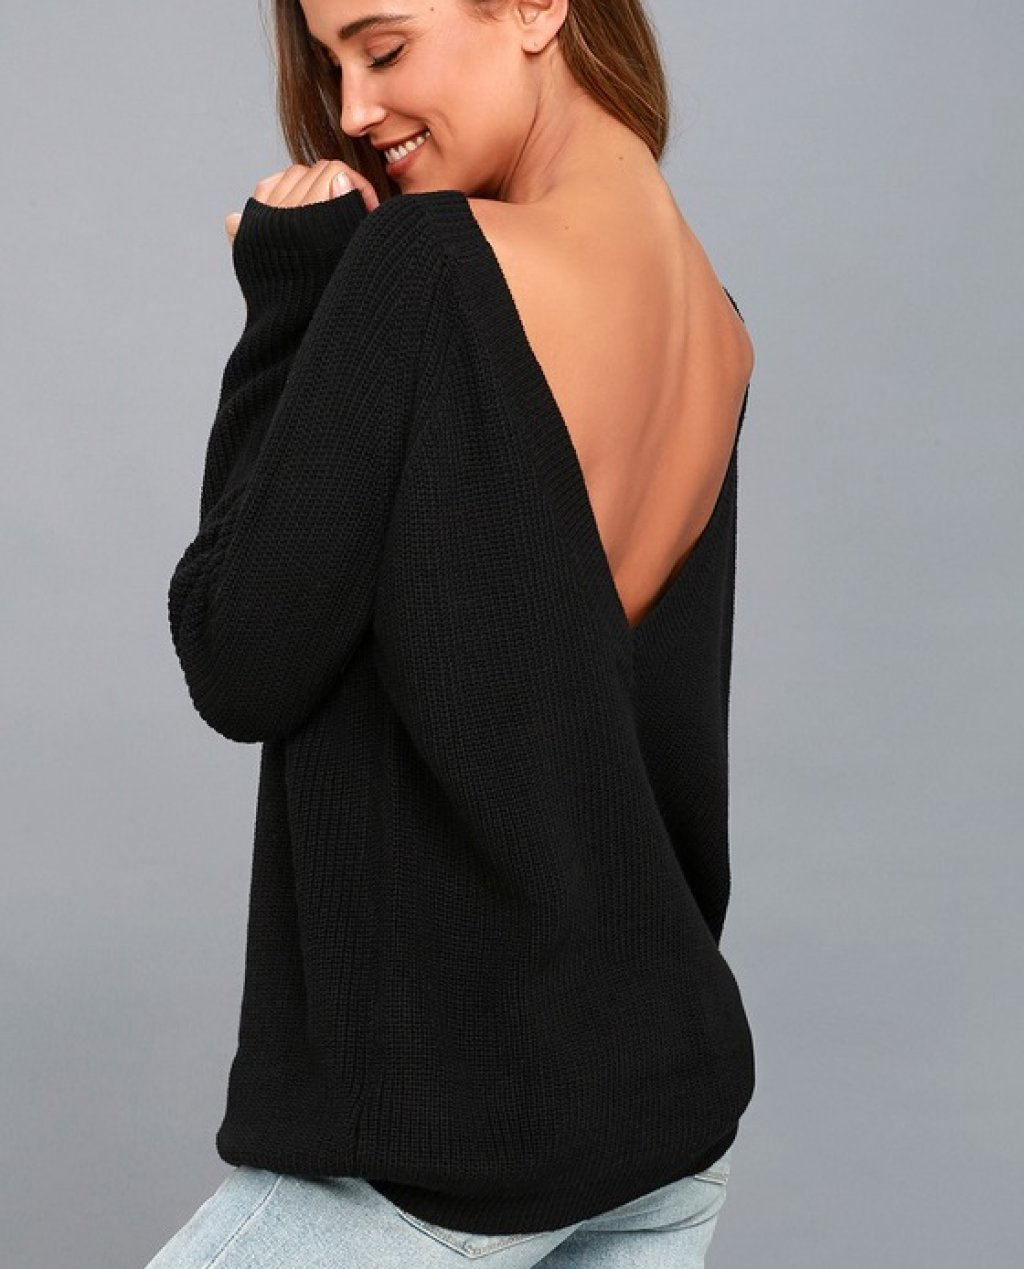 Just For You Black Backless Sweater